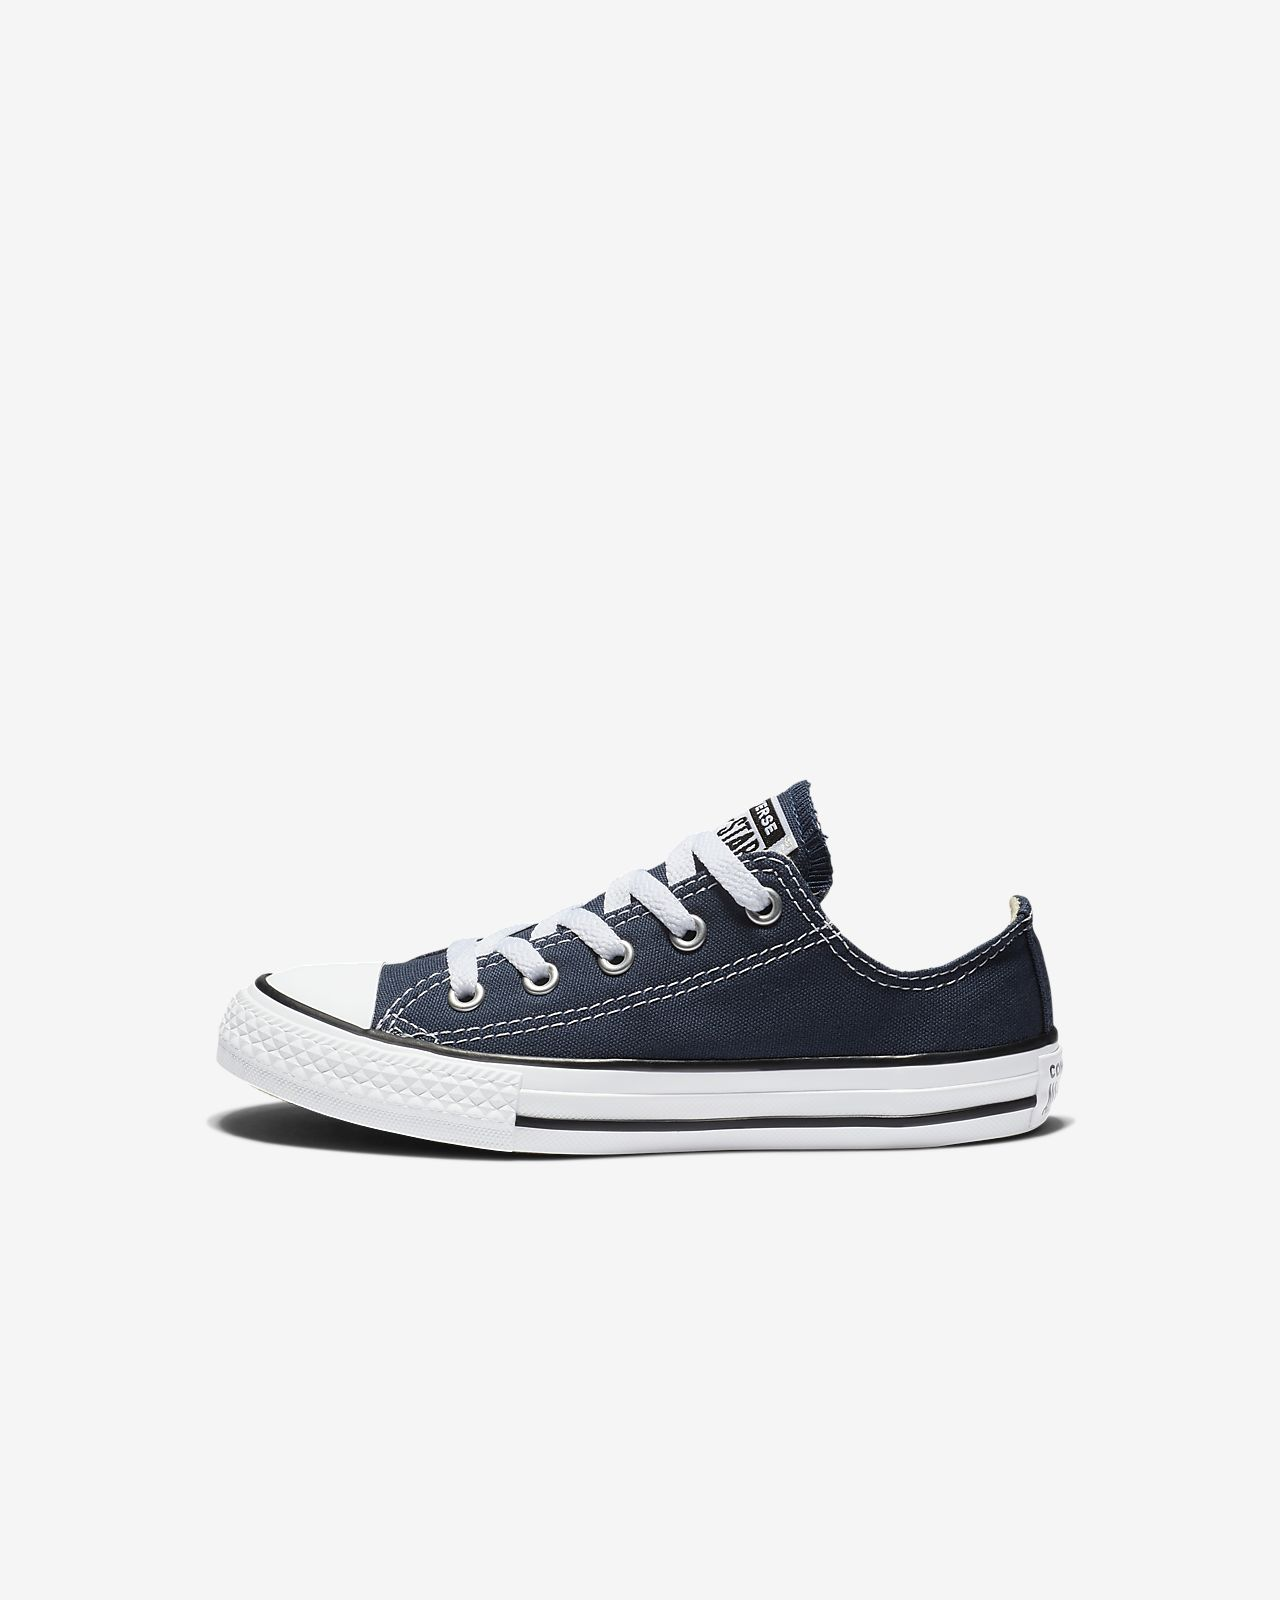 a96f7c2d5930 Converse Chuck Taylor All Star Low Top (10.5c-3y) Little Kids  Shoe ...